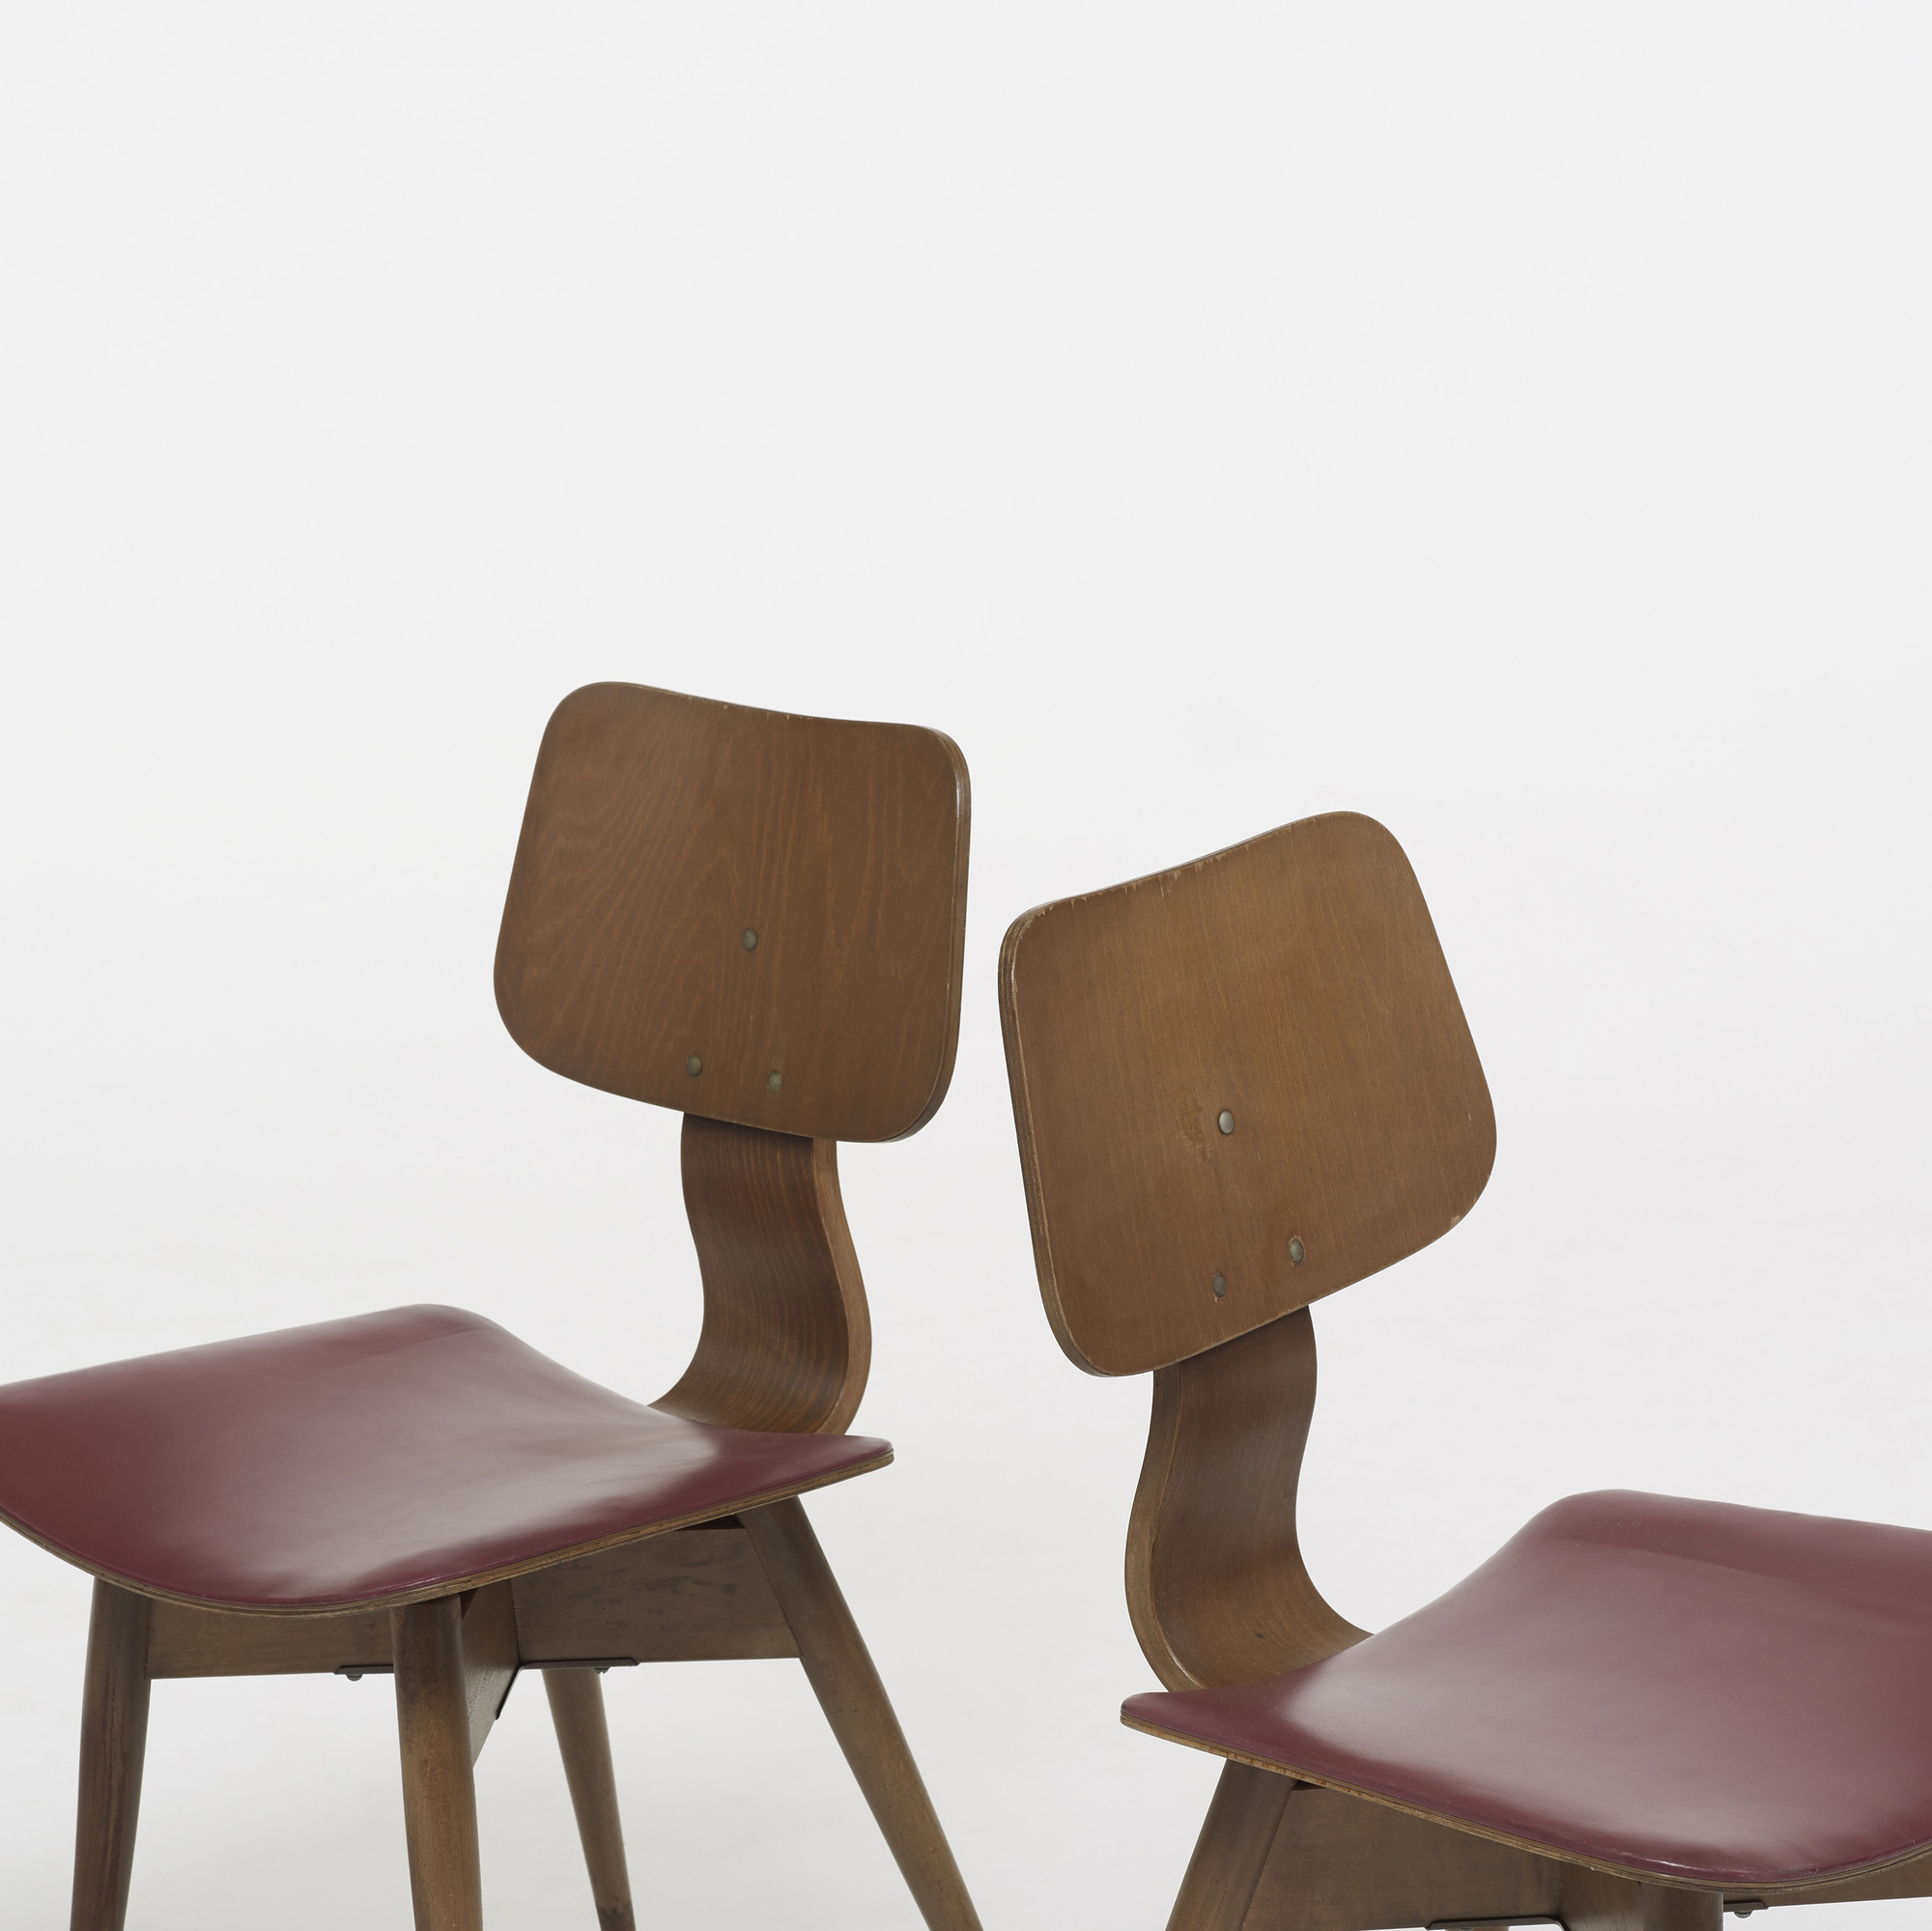 382: Tokukichi Kato / chairs, pair (2 of 3)